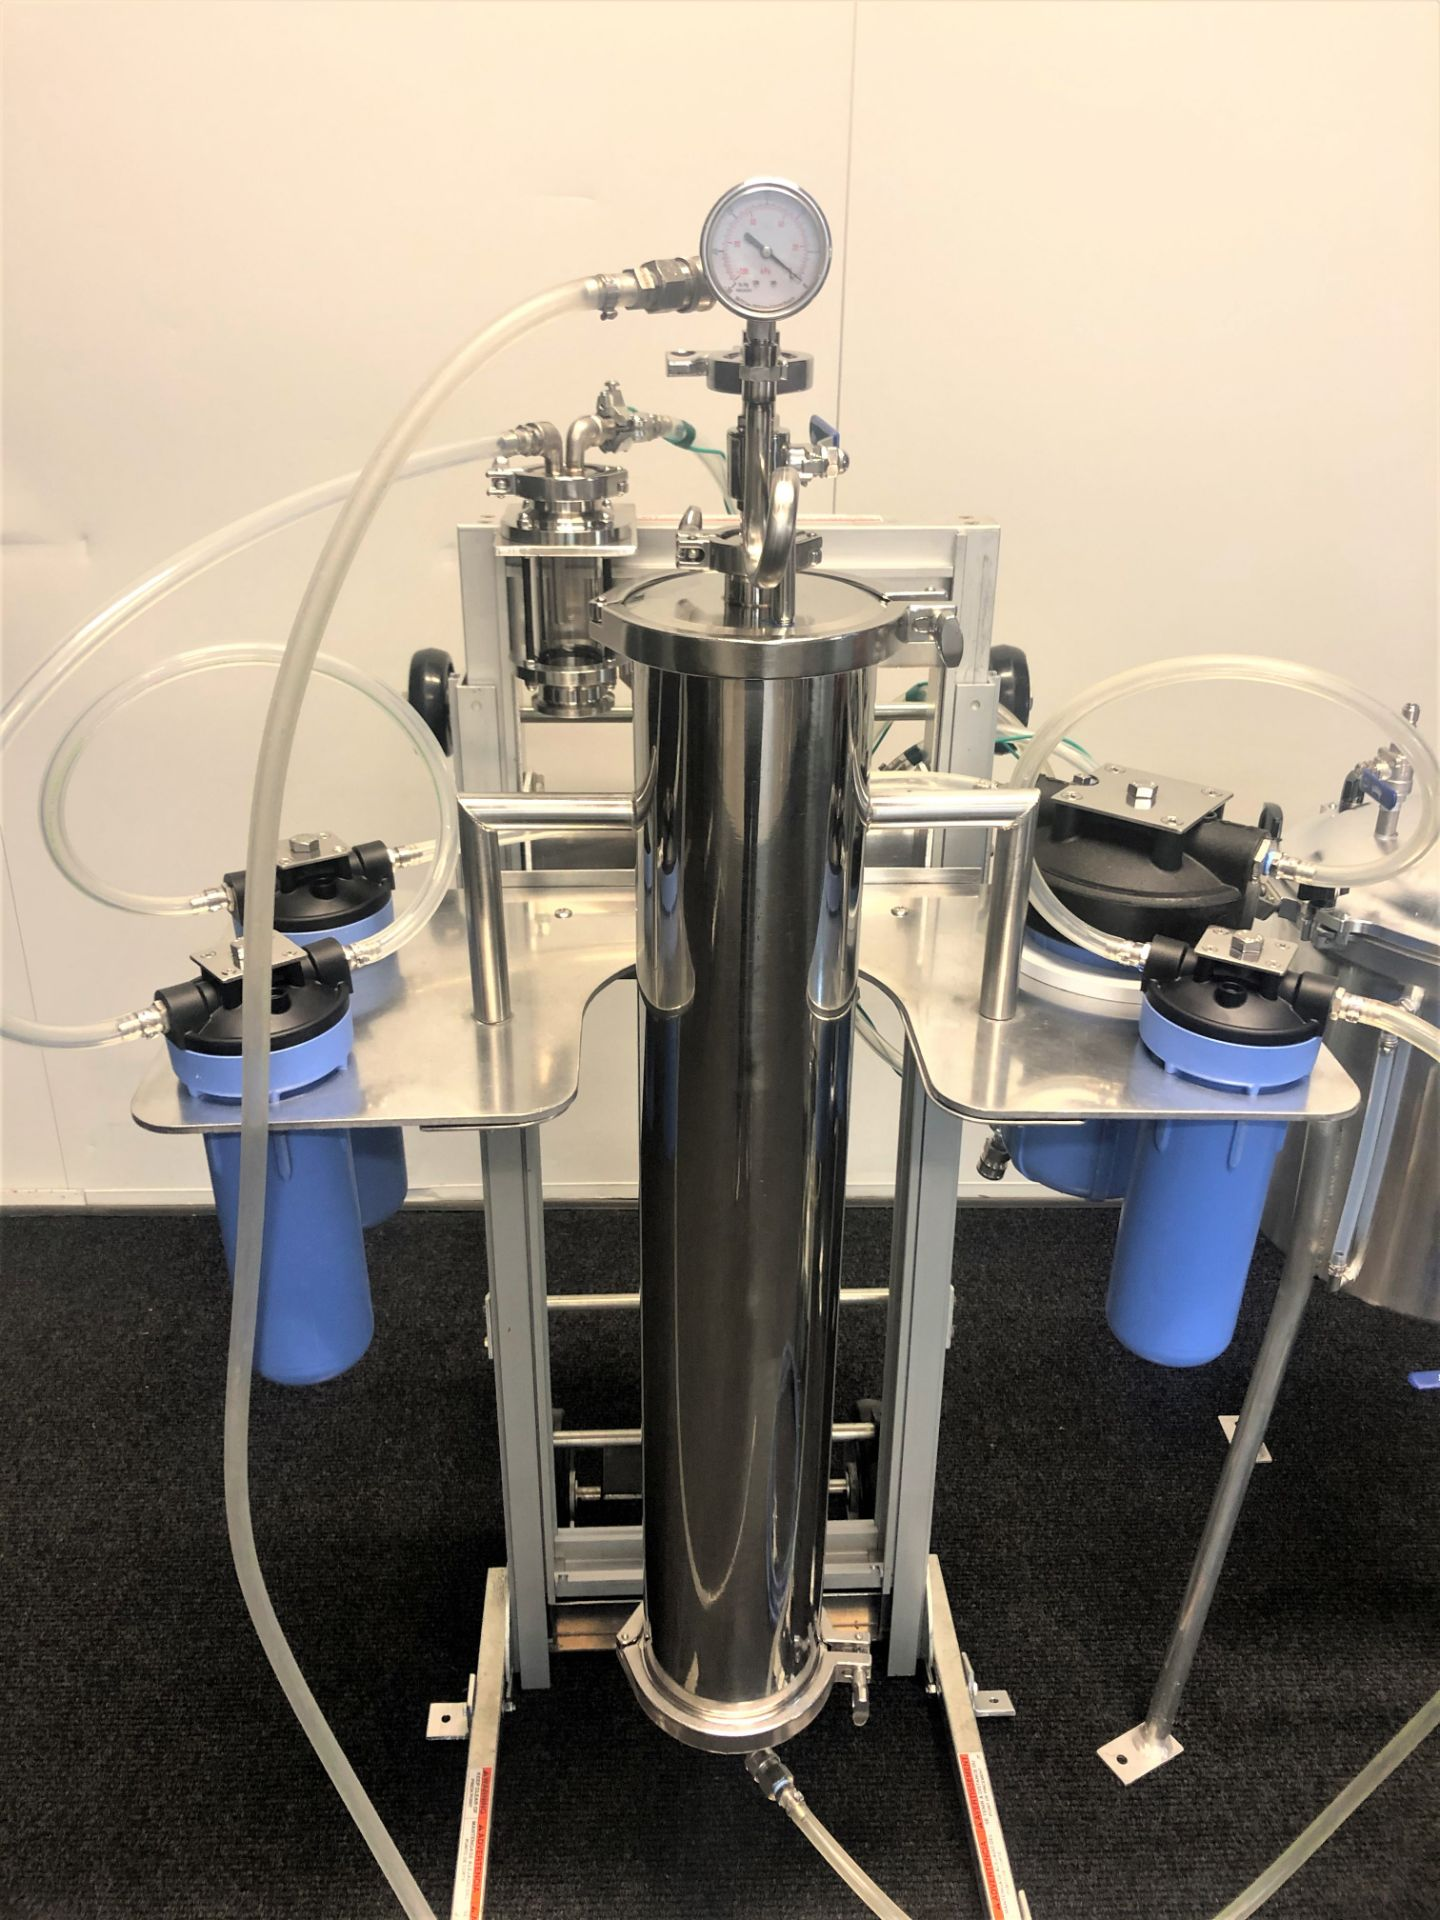 Used-CRCfilters Ethanol Extraction/Purification System. Model EP-05 w/ 20 Gal Collection Vessel - Image 3 of 6